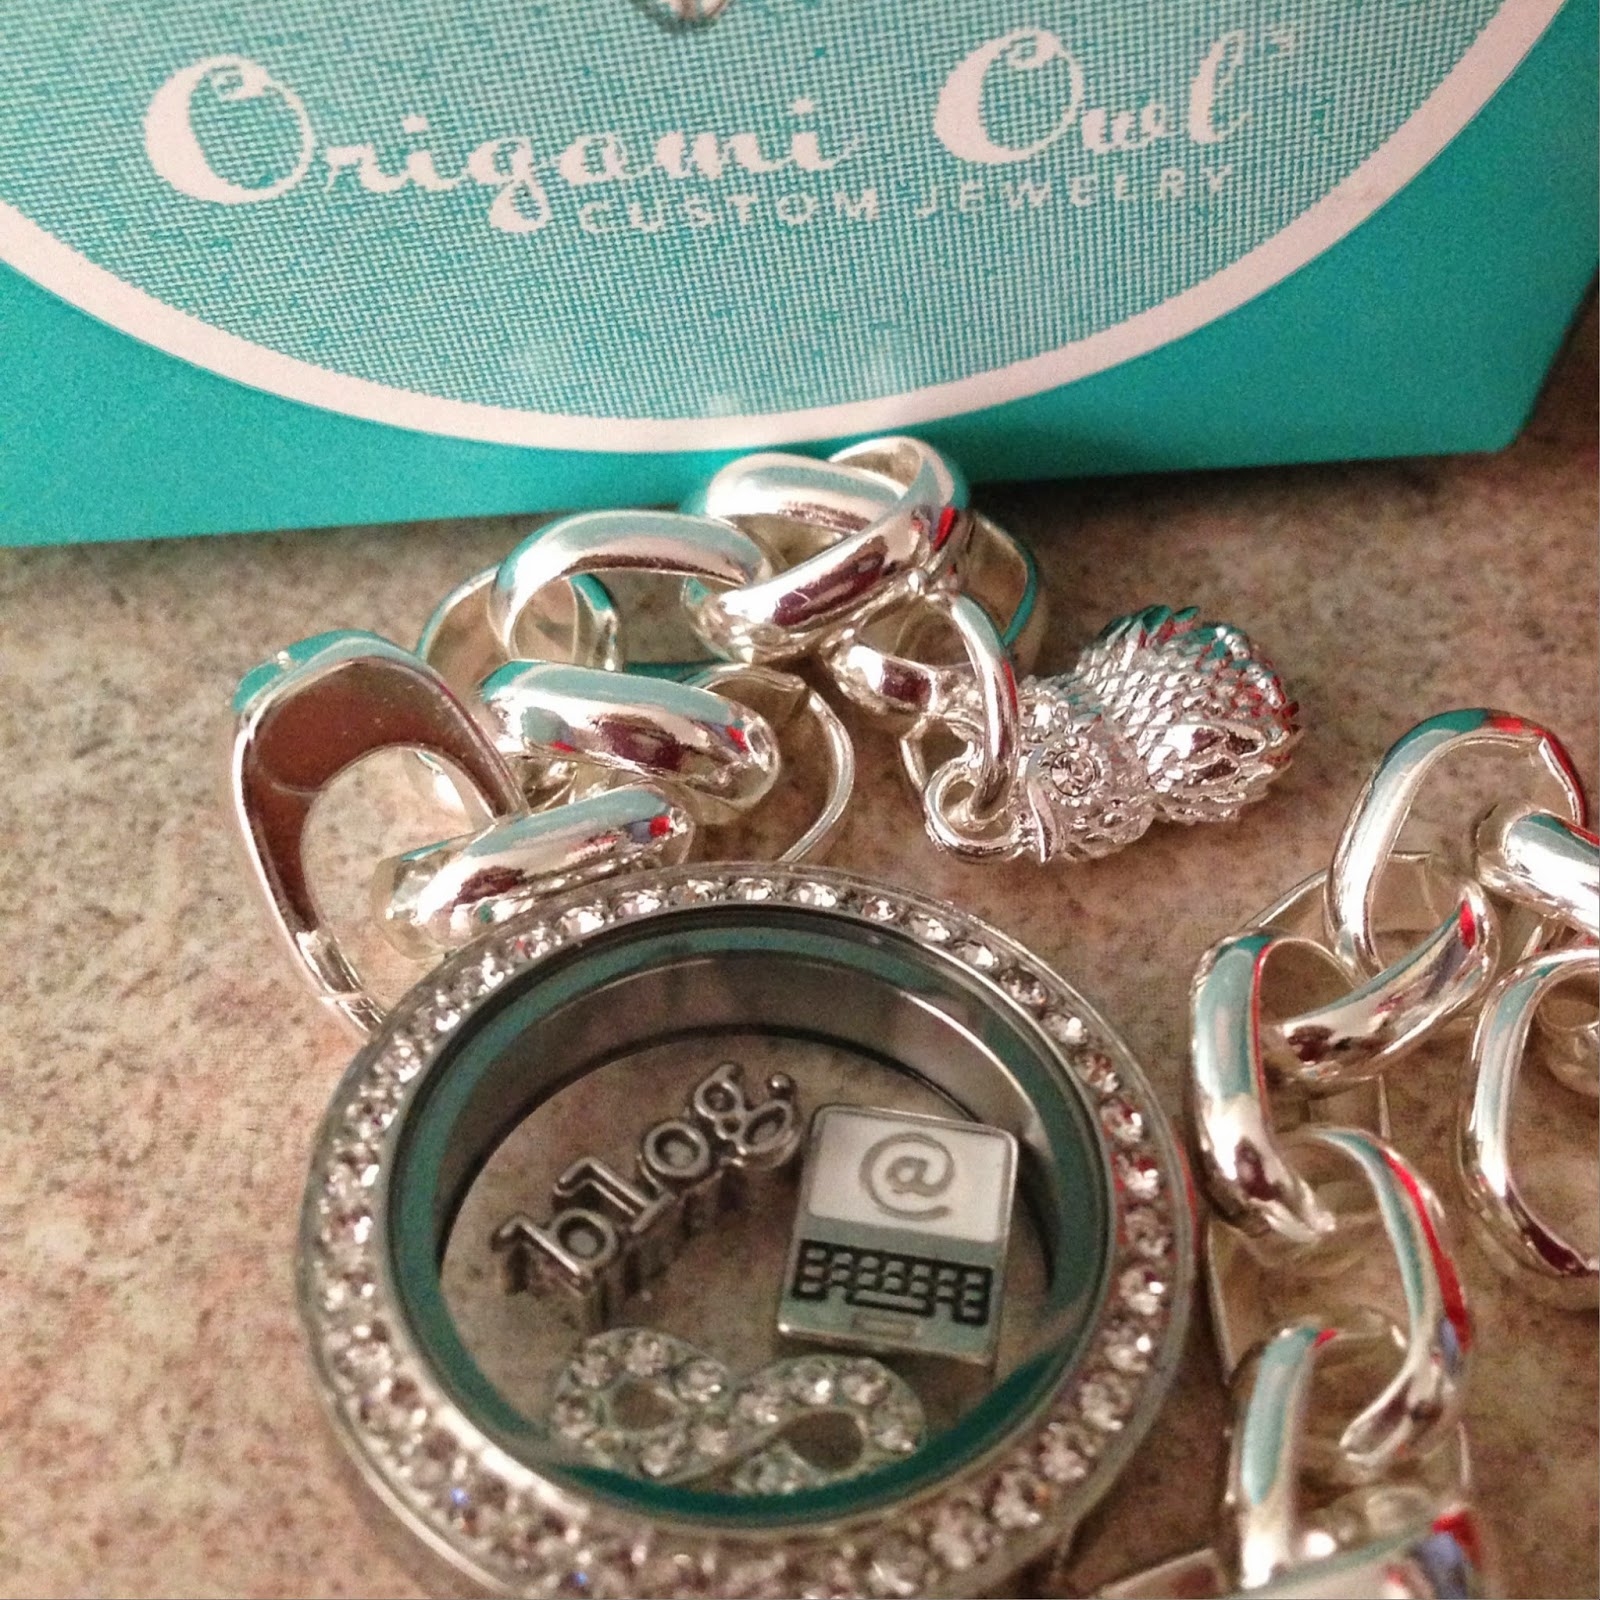 Blogging Bracelet from Origami Owl